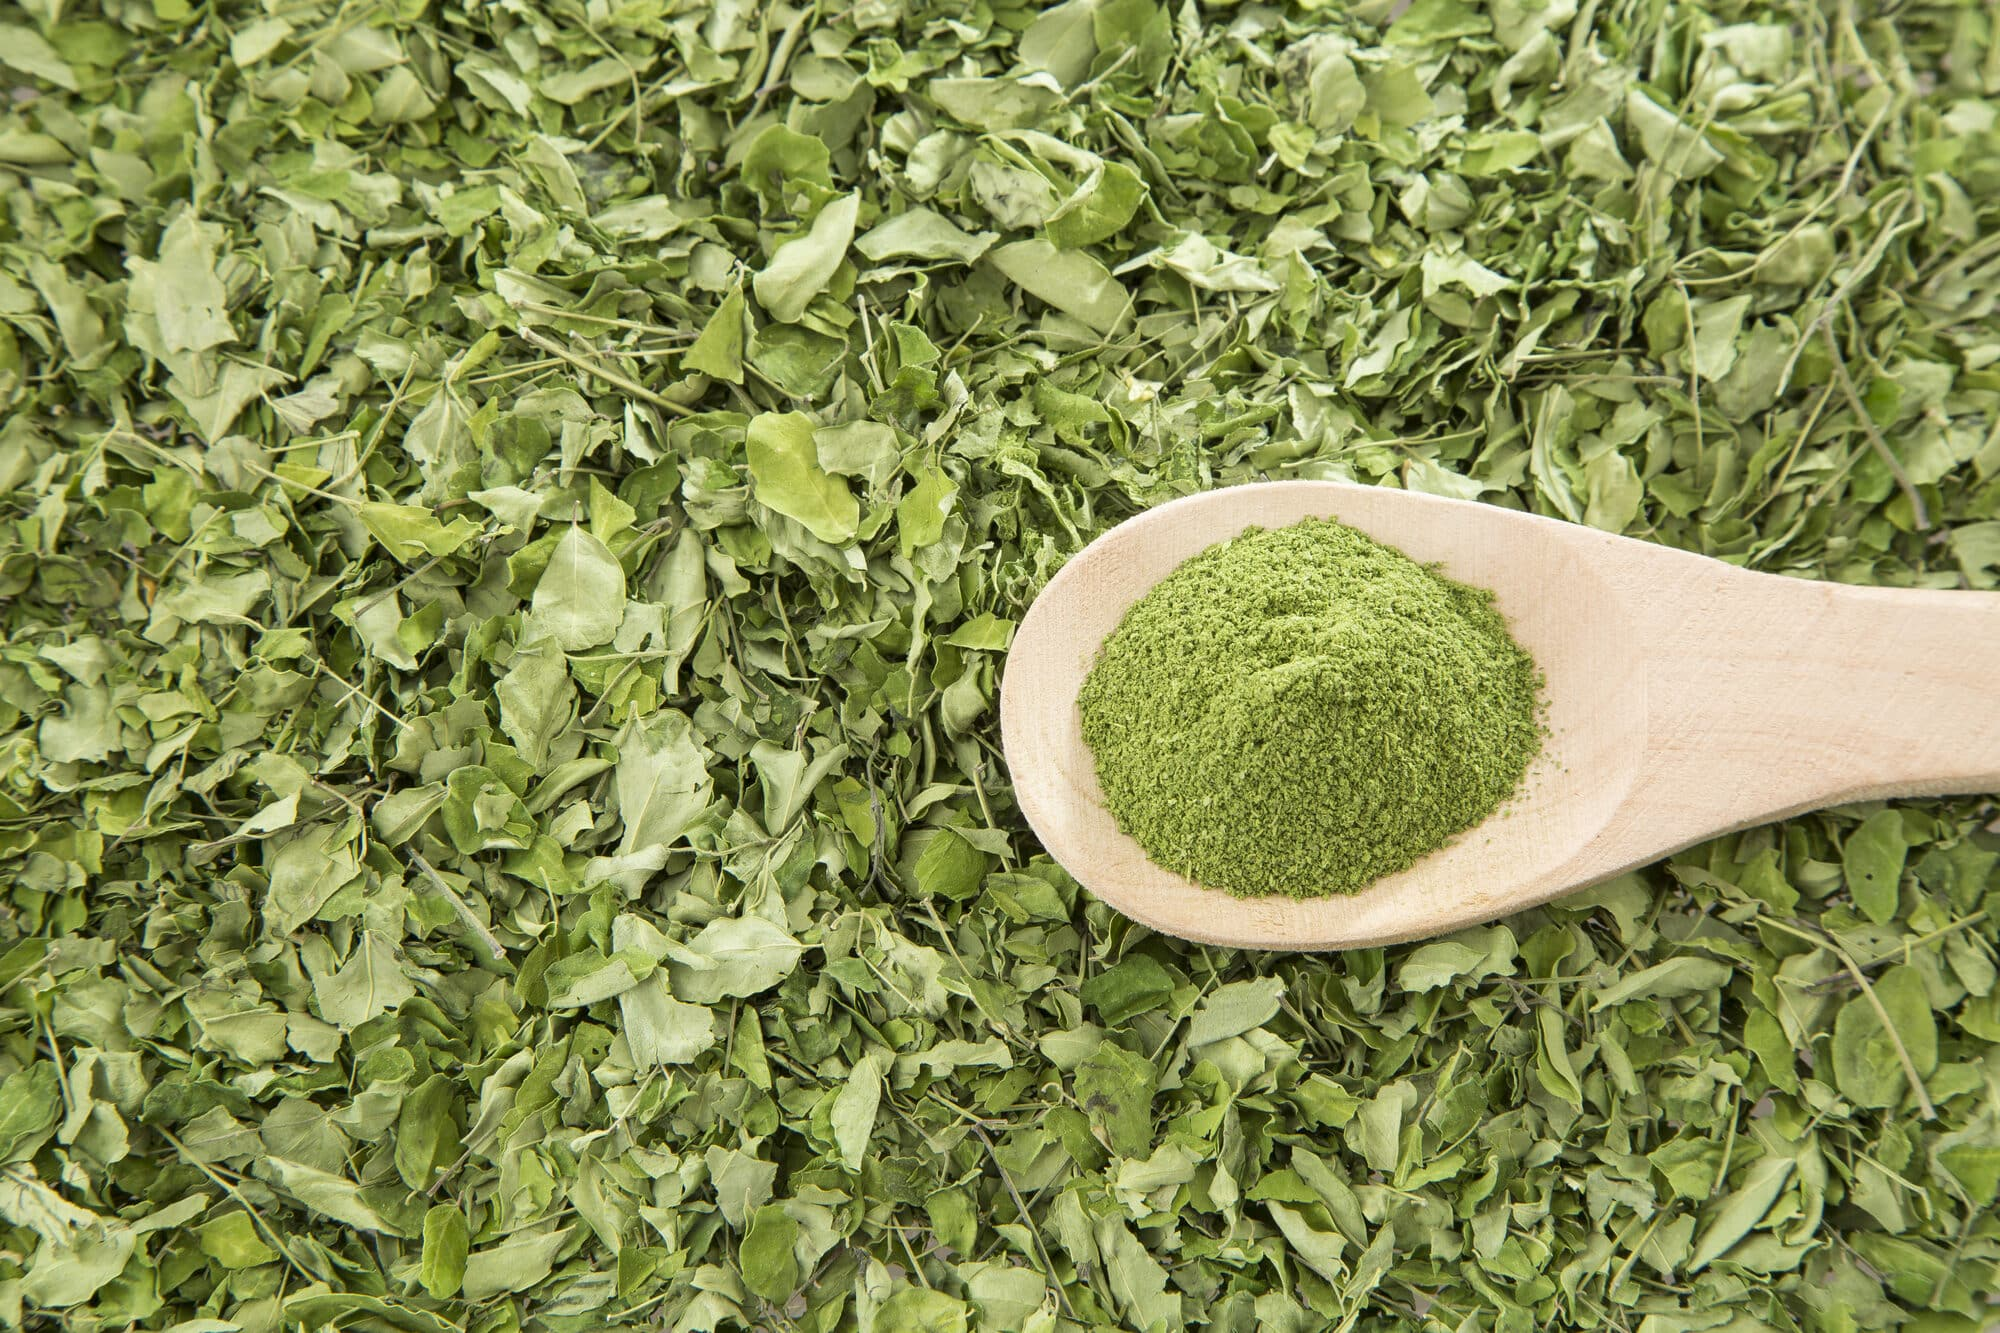 Cooking With Moringa: The Dos And Don'ts